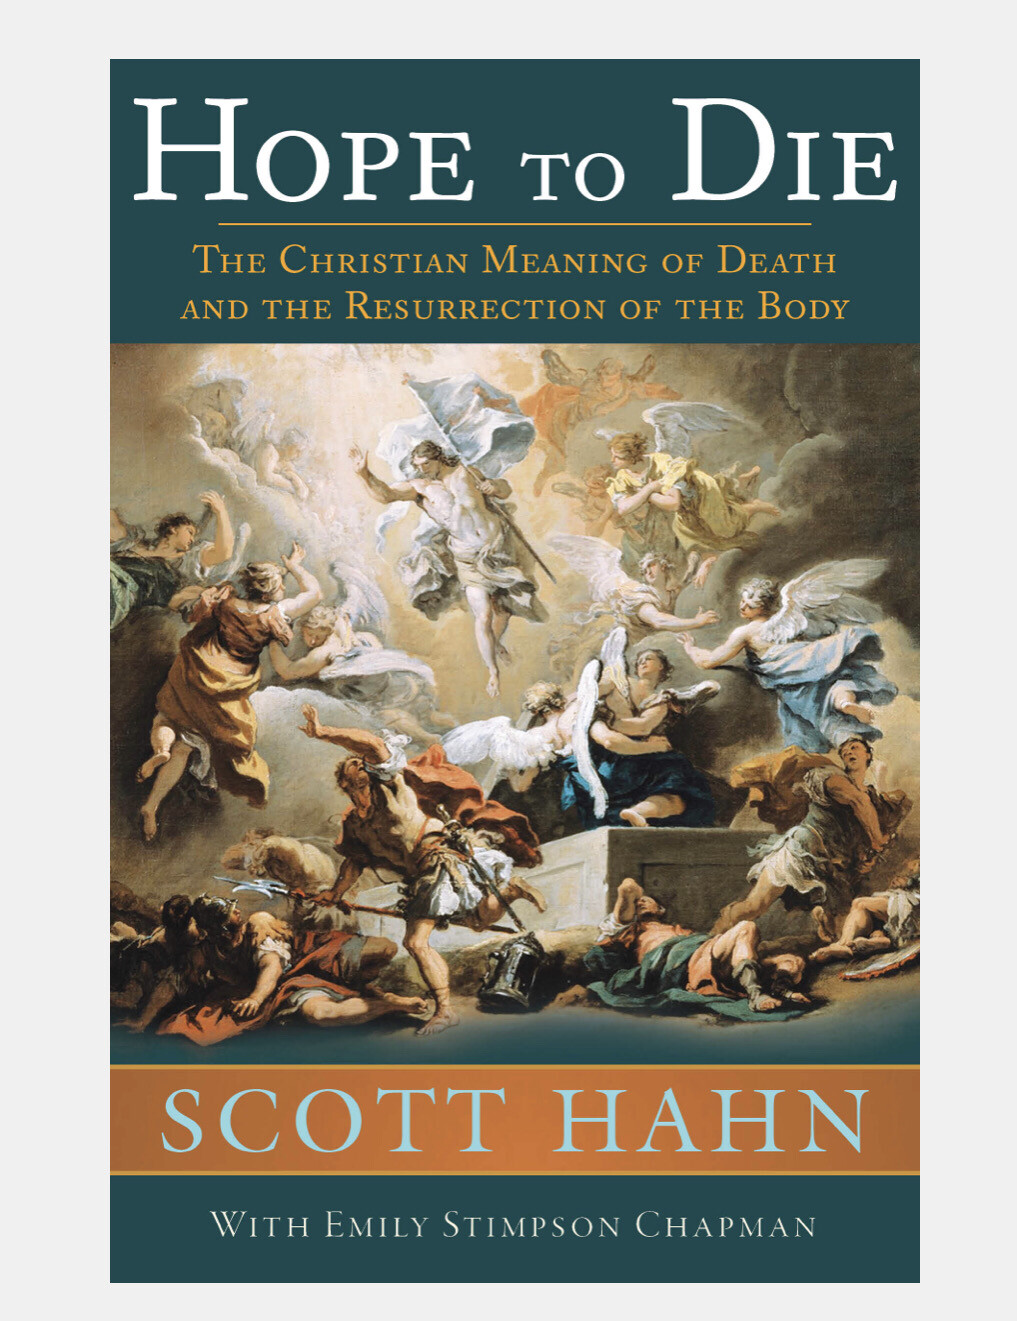 Hope to Die: The Christian Meaning of Death and the Resurrection of the Body by Scott Hahn Hardcover